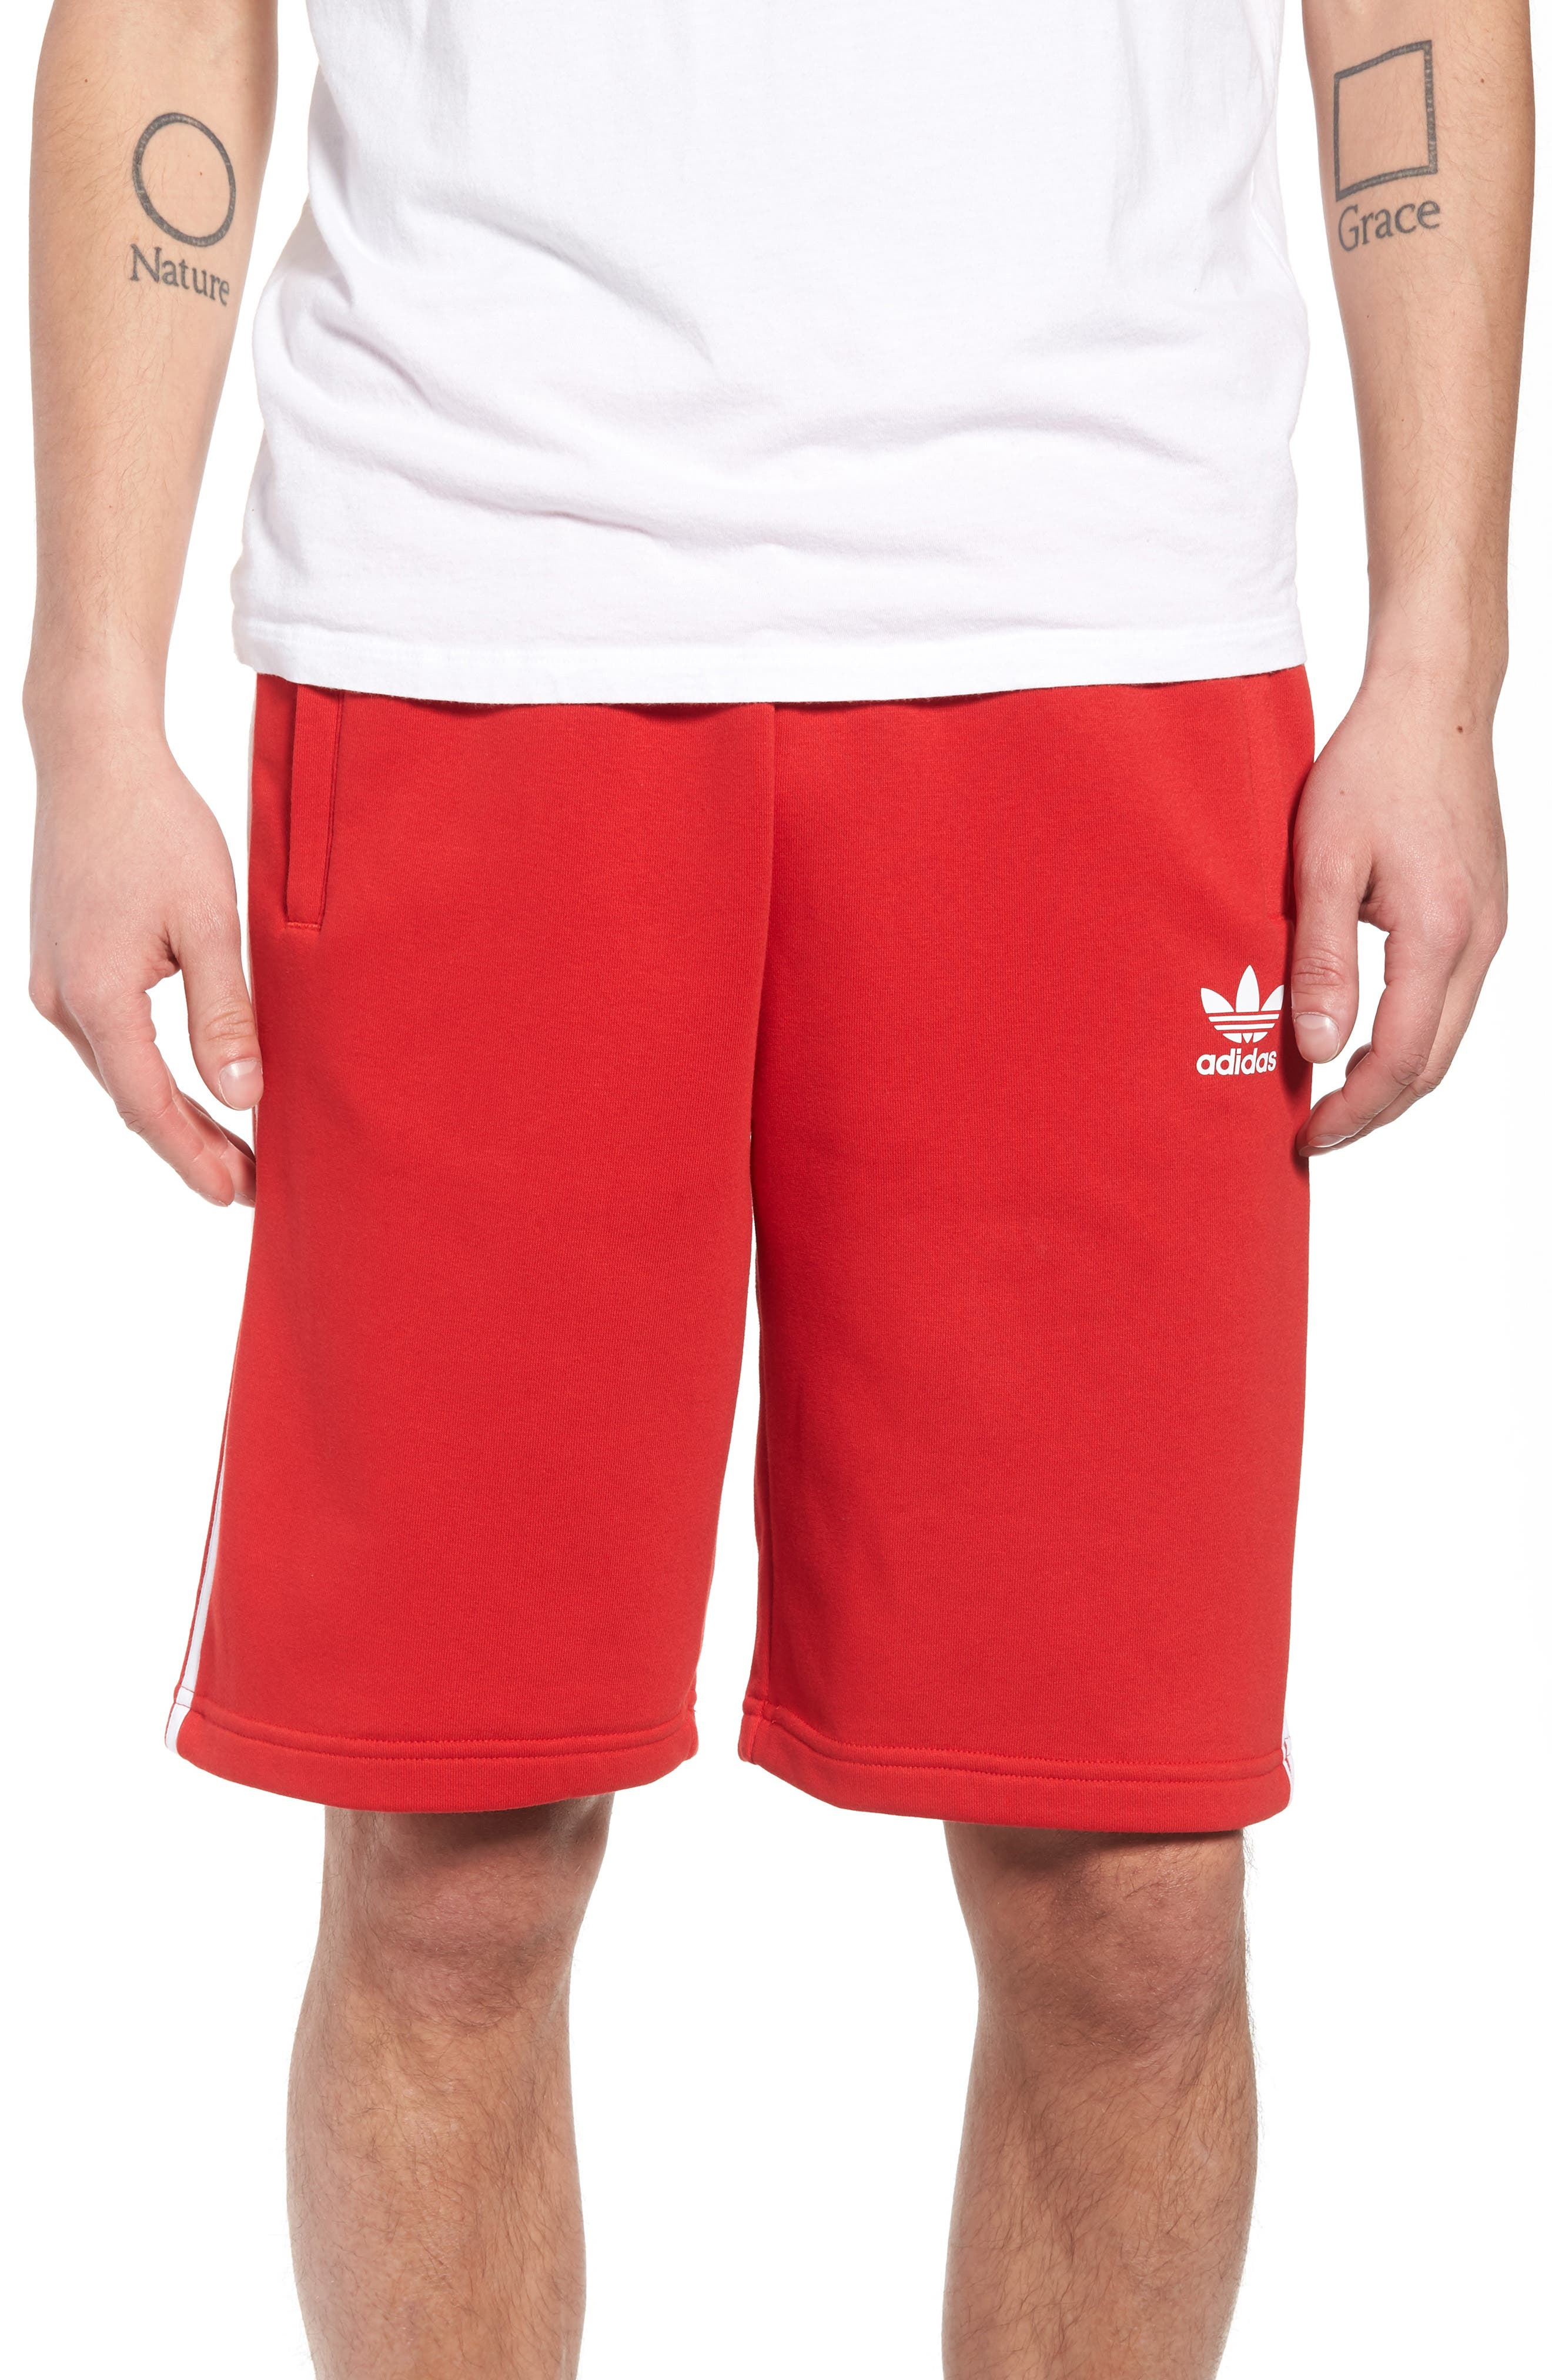 3-Stripes Shorts,                         Main,                         color, Red/ White